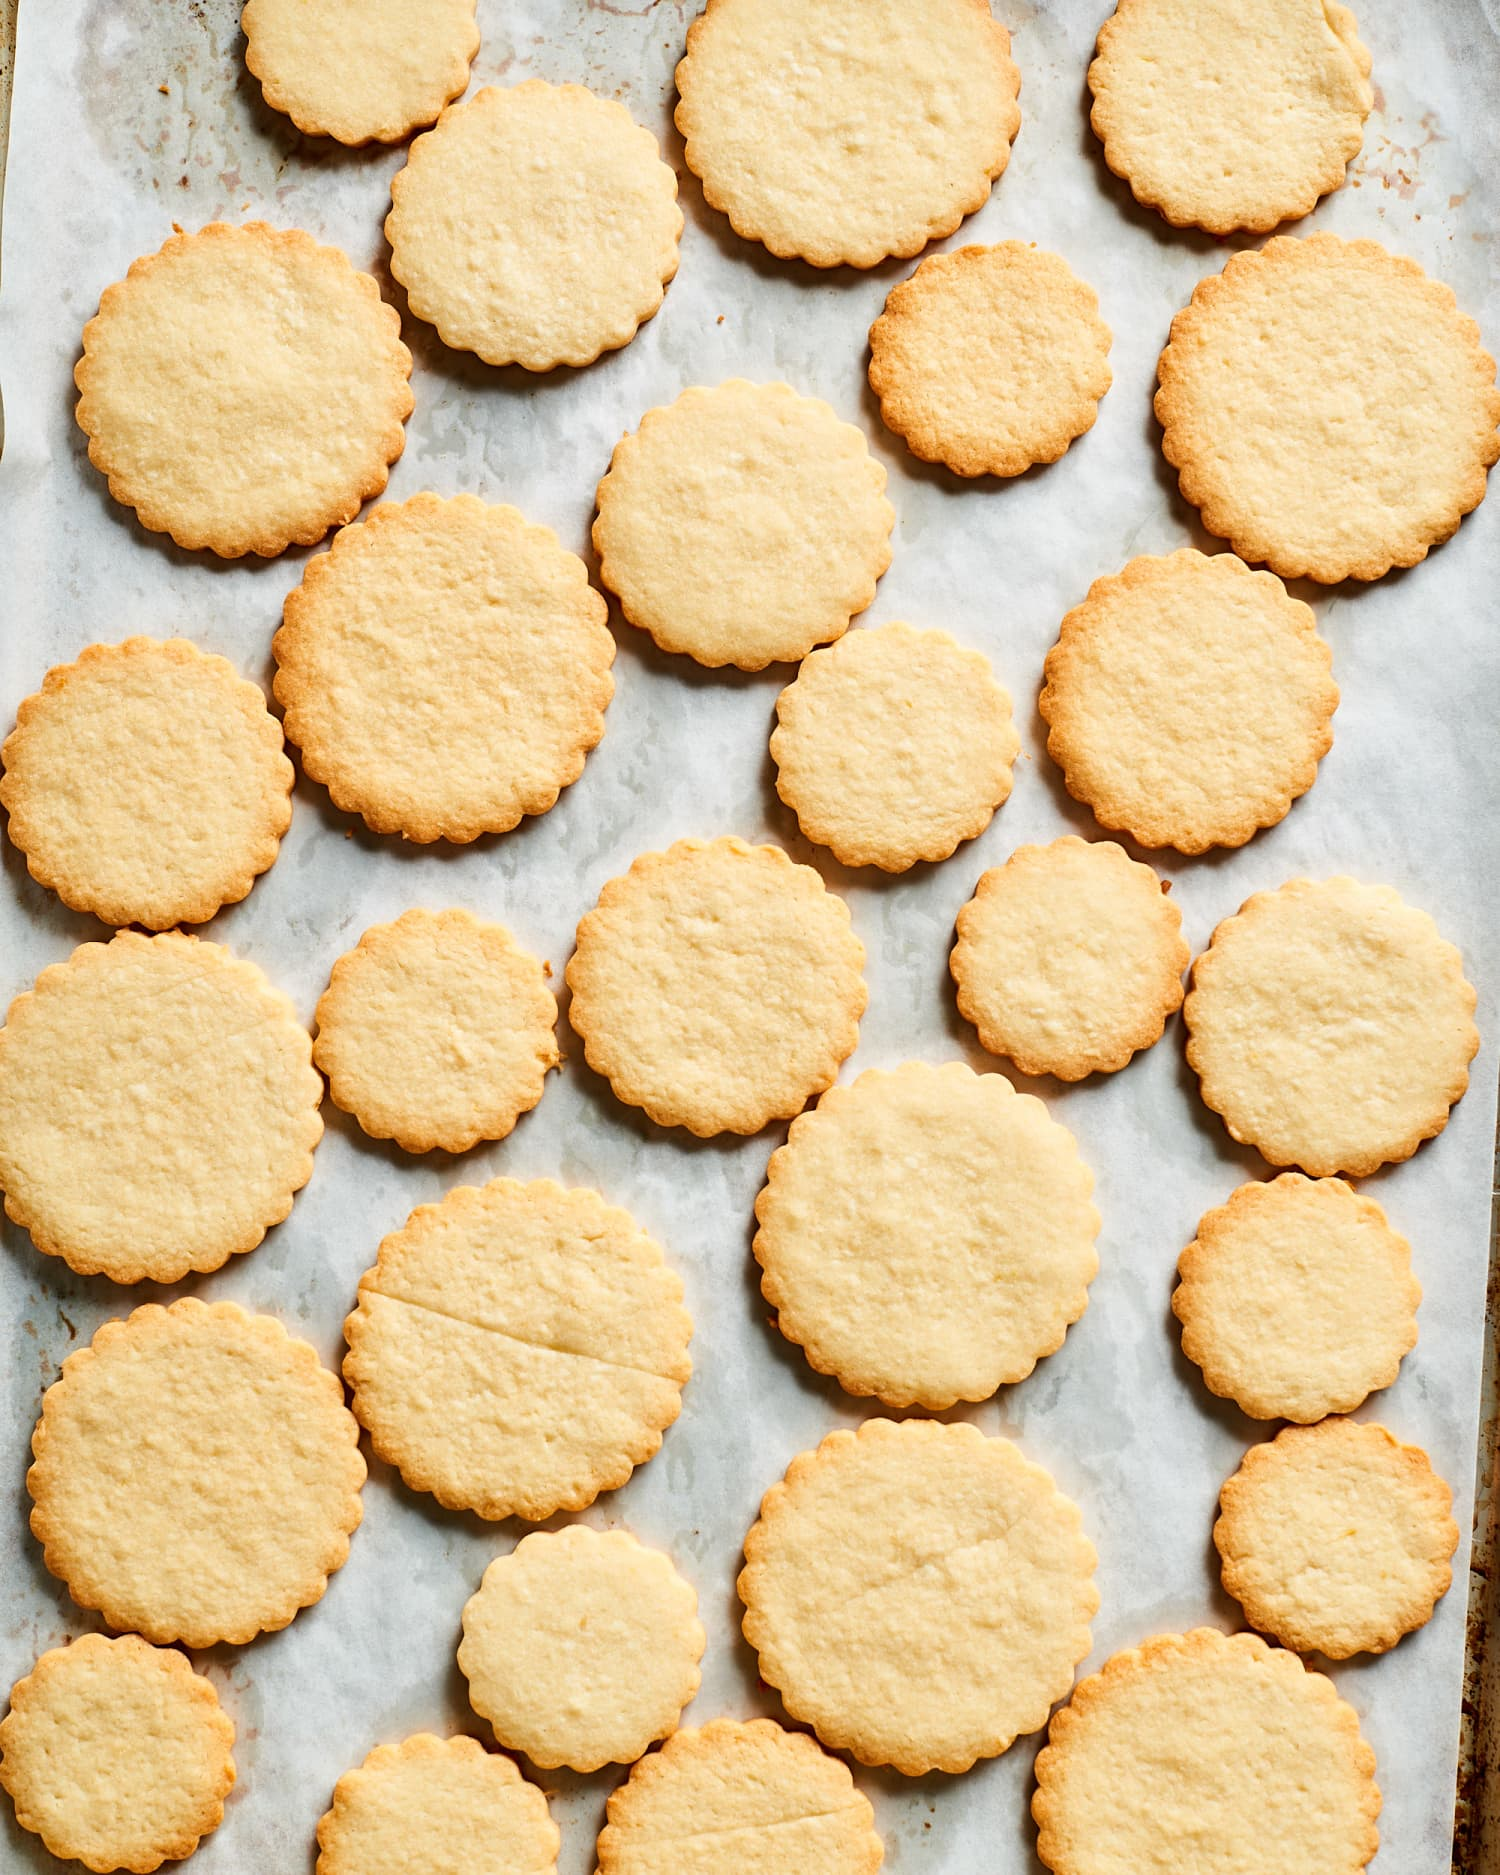 Use This Method For Perfect Cut-Out Cookies Every Time